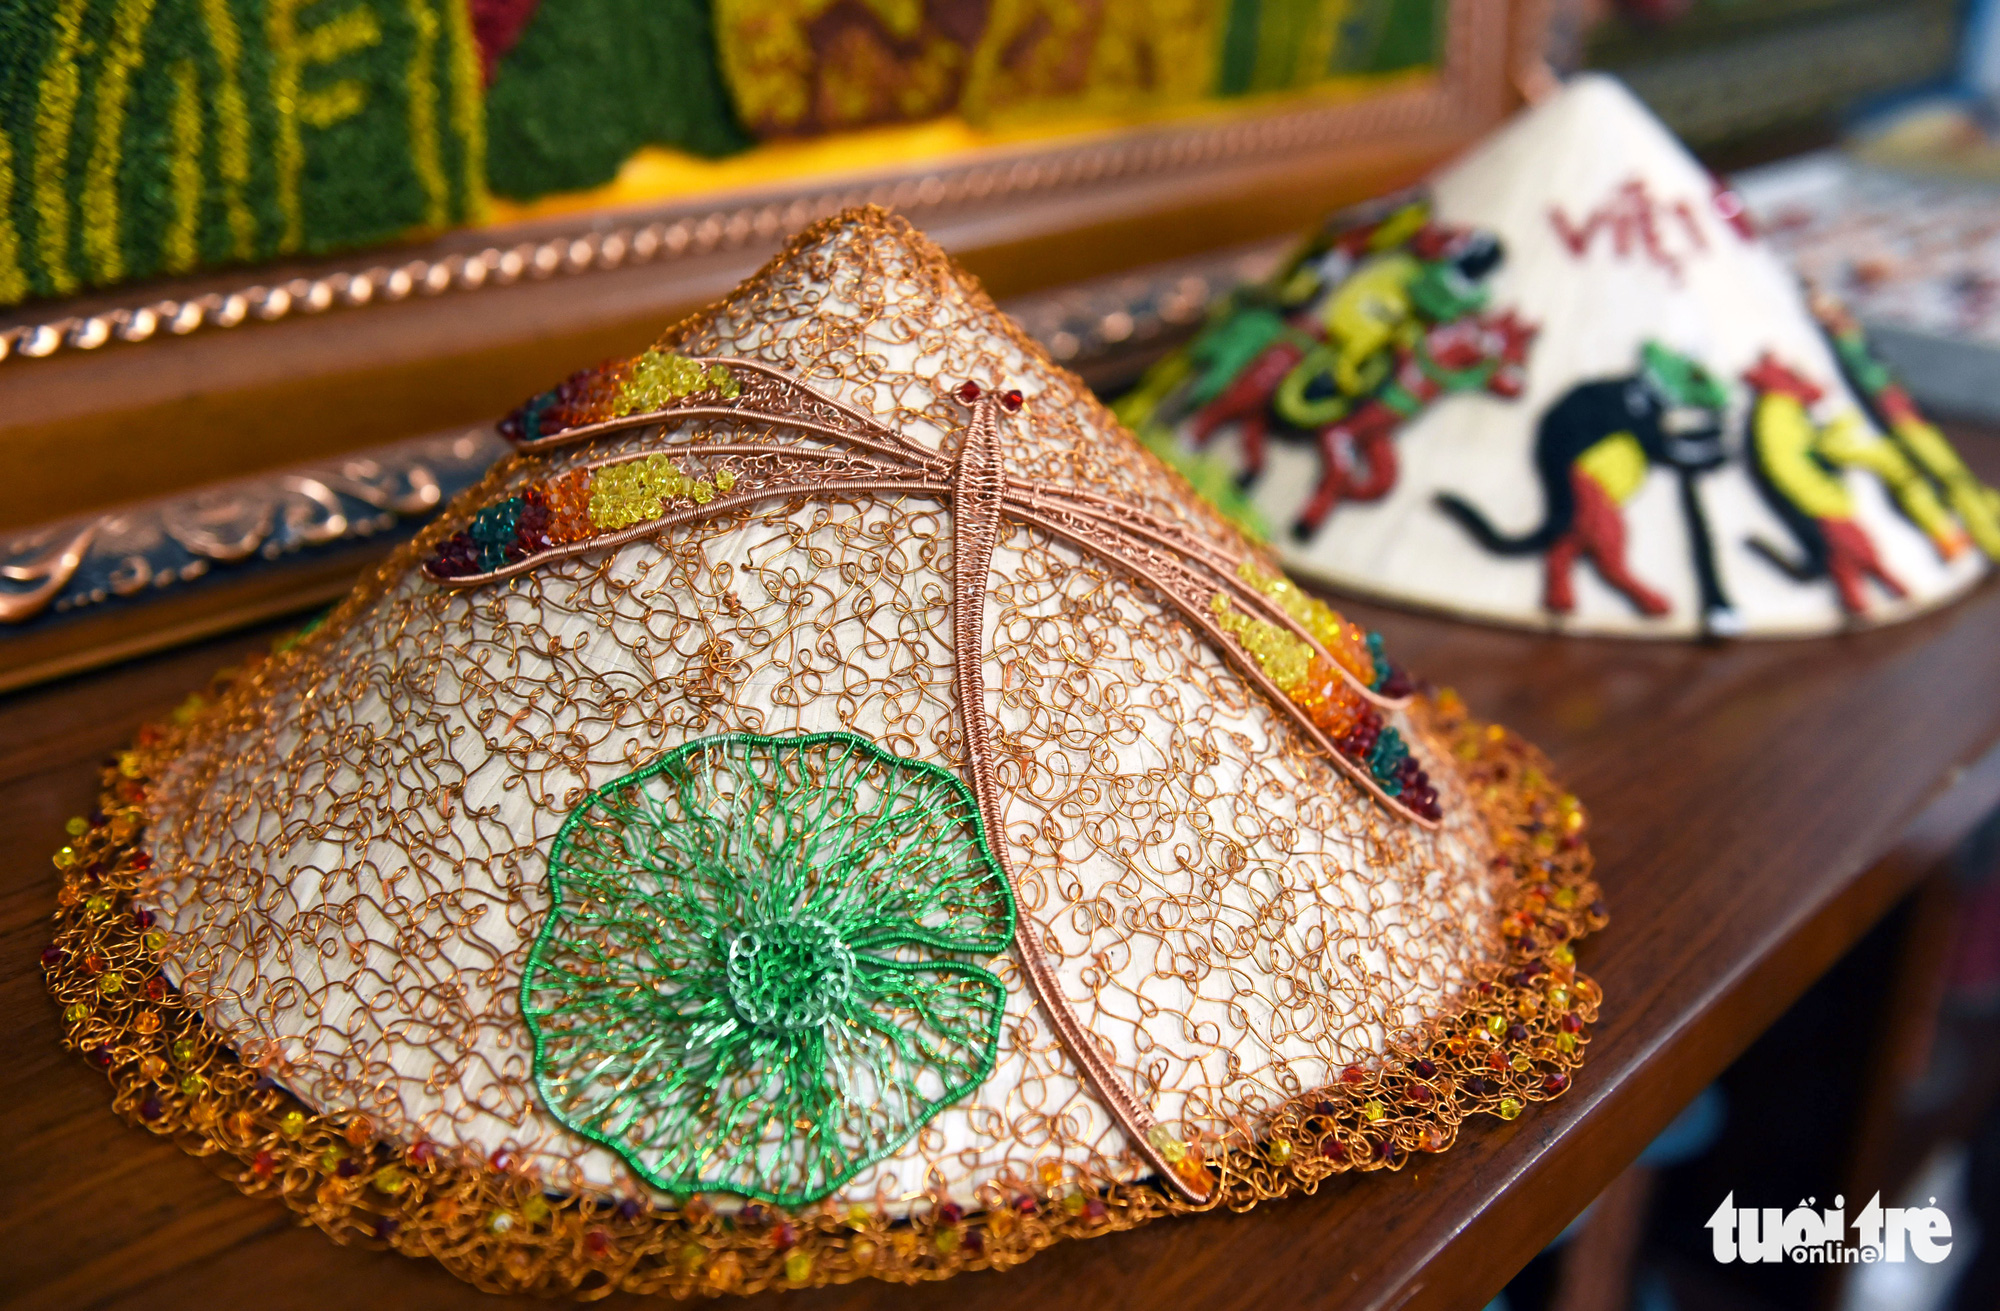 A copper wire lotus leaf and dragonfly decorate a traditional Vietnamese 'non la' conical hat at an art class in Ho Chi Minh City, Vietnam. Photo: Duyen Phan / Tuoi Tre